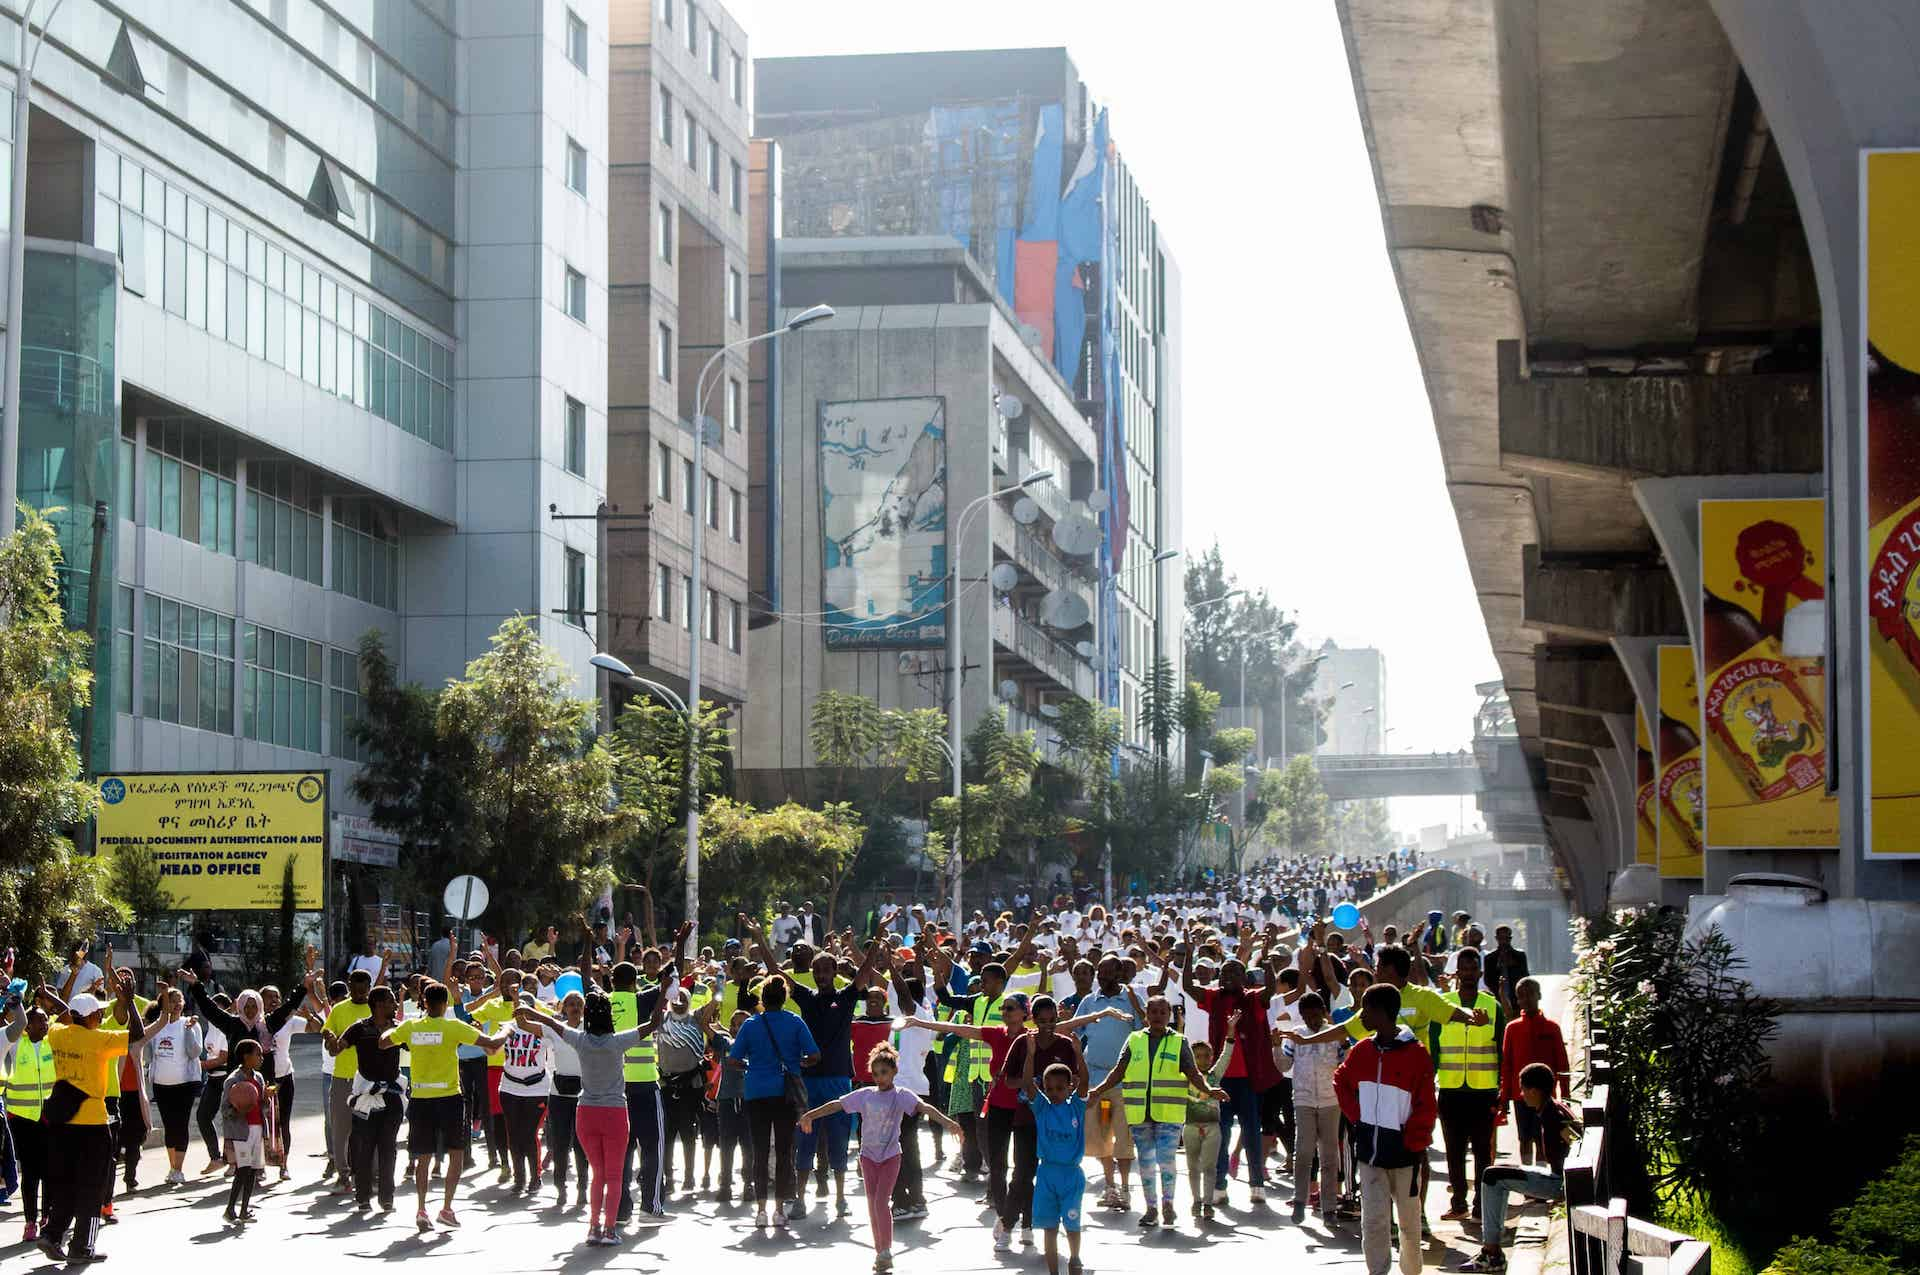 Menged Le Sew. Photo from https://www.c40knowledgehub.org/s/article/Cities100-Car-free-days-are-driving-Addis-Ababa-toward-a-cleaner-people-centric-future?language=en_US